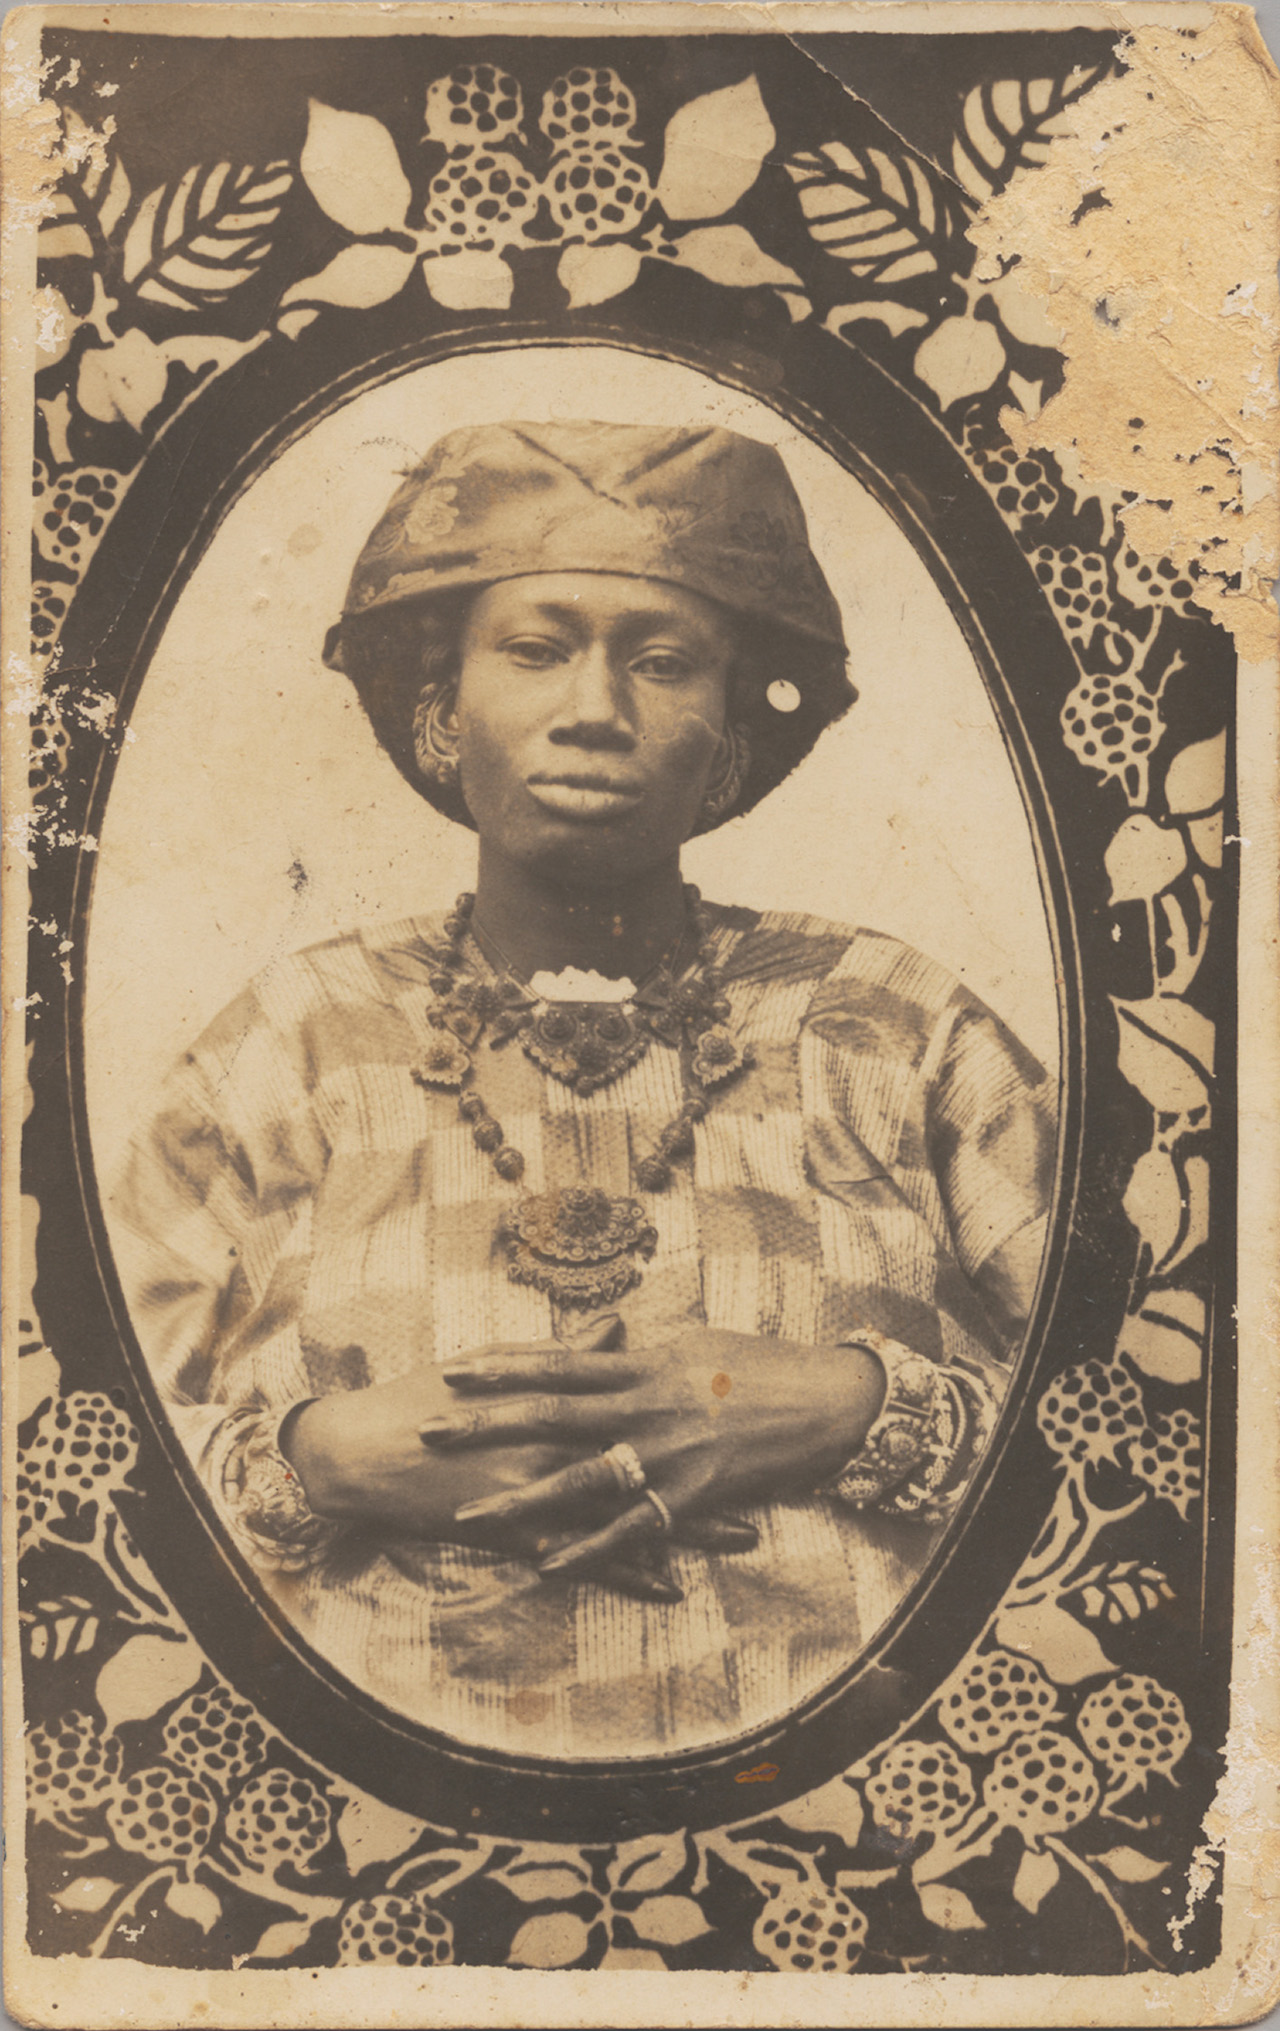 Unknown Artist (Senegal) Senegalese Woman, 1910s Postcard format gelatin silver print 5 x 3 in (14 x 8.9 cm) Visual Resource Archive, Department of the Arts of Africa, Oceania, and the Americas